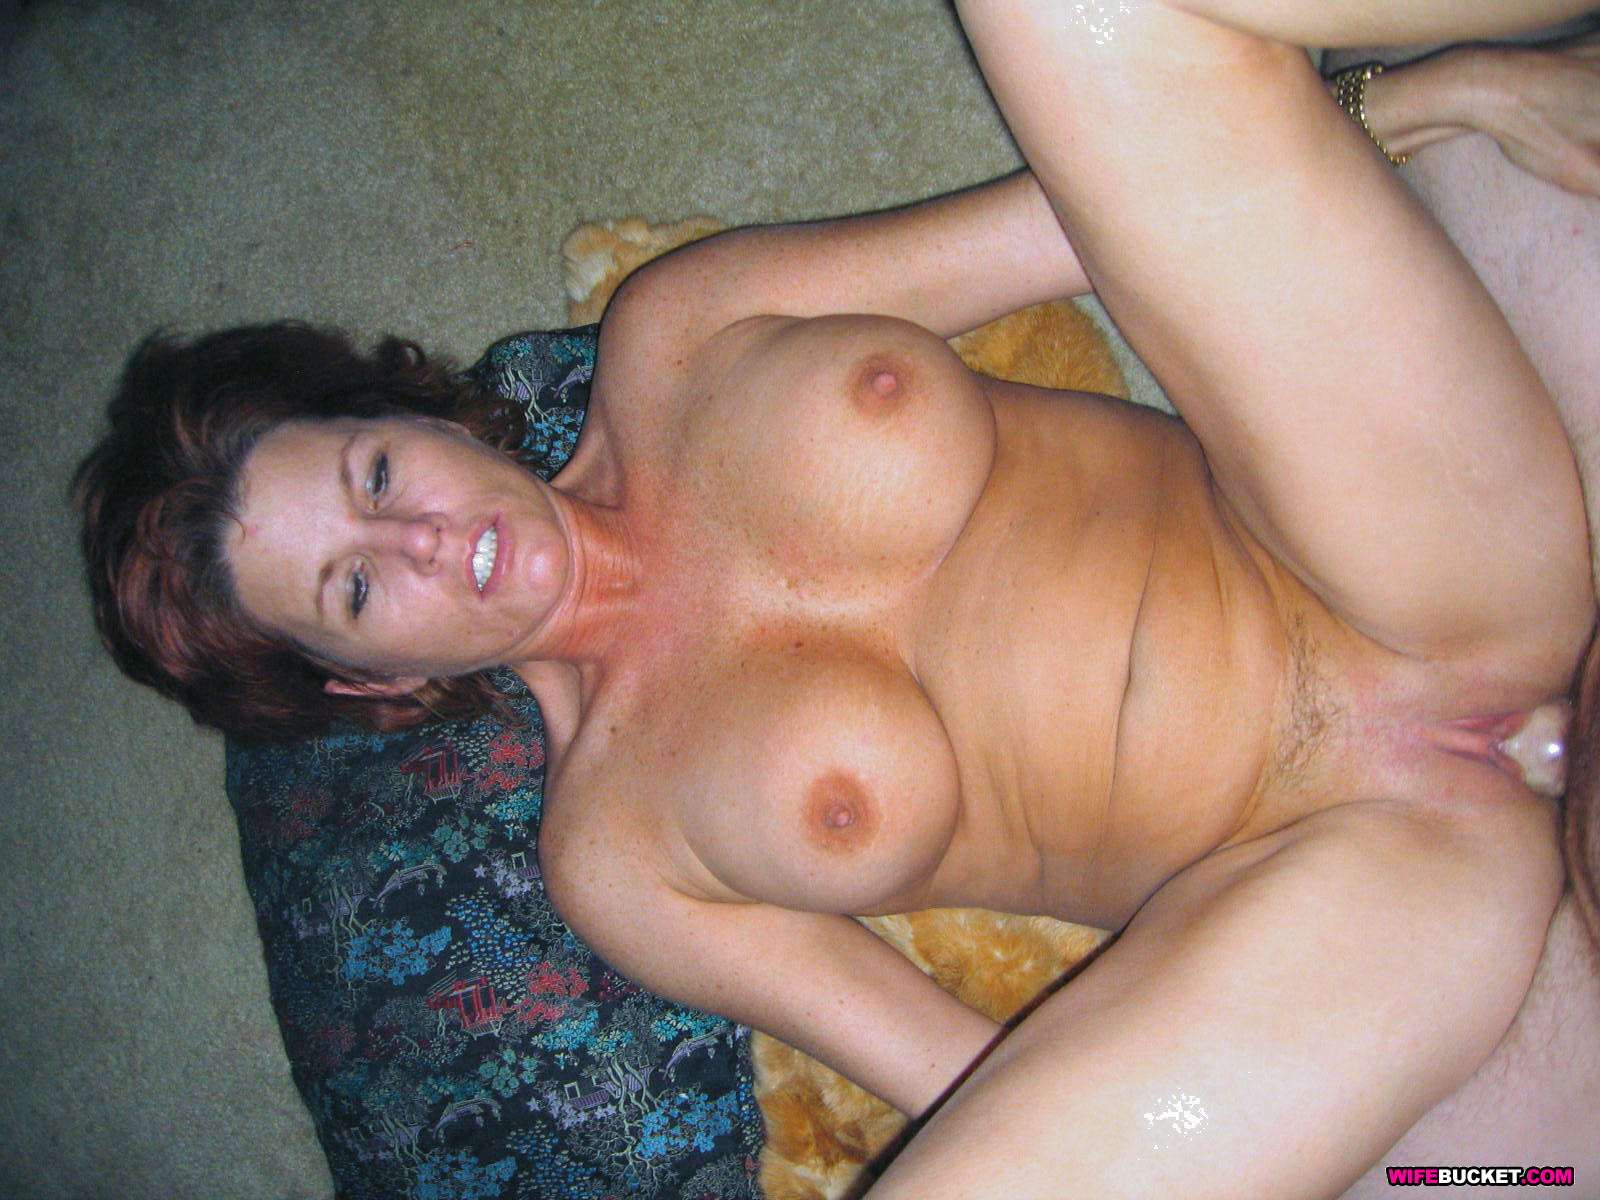 Cheating wife fuck pics